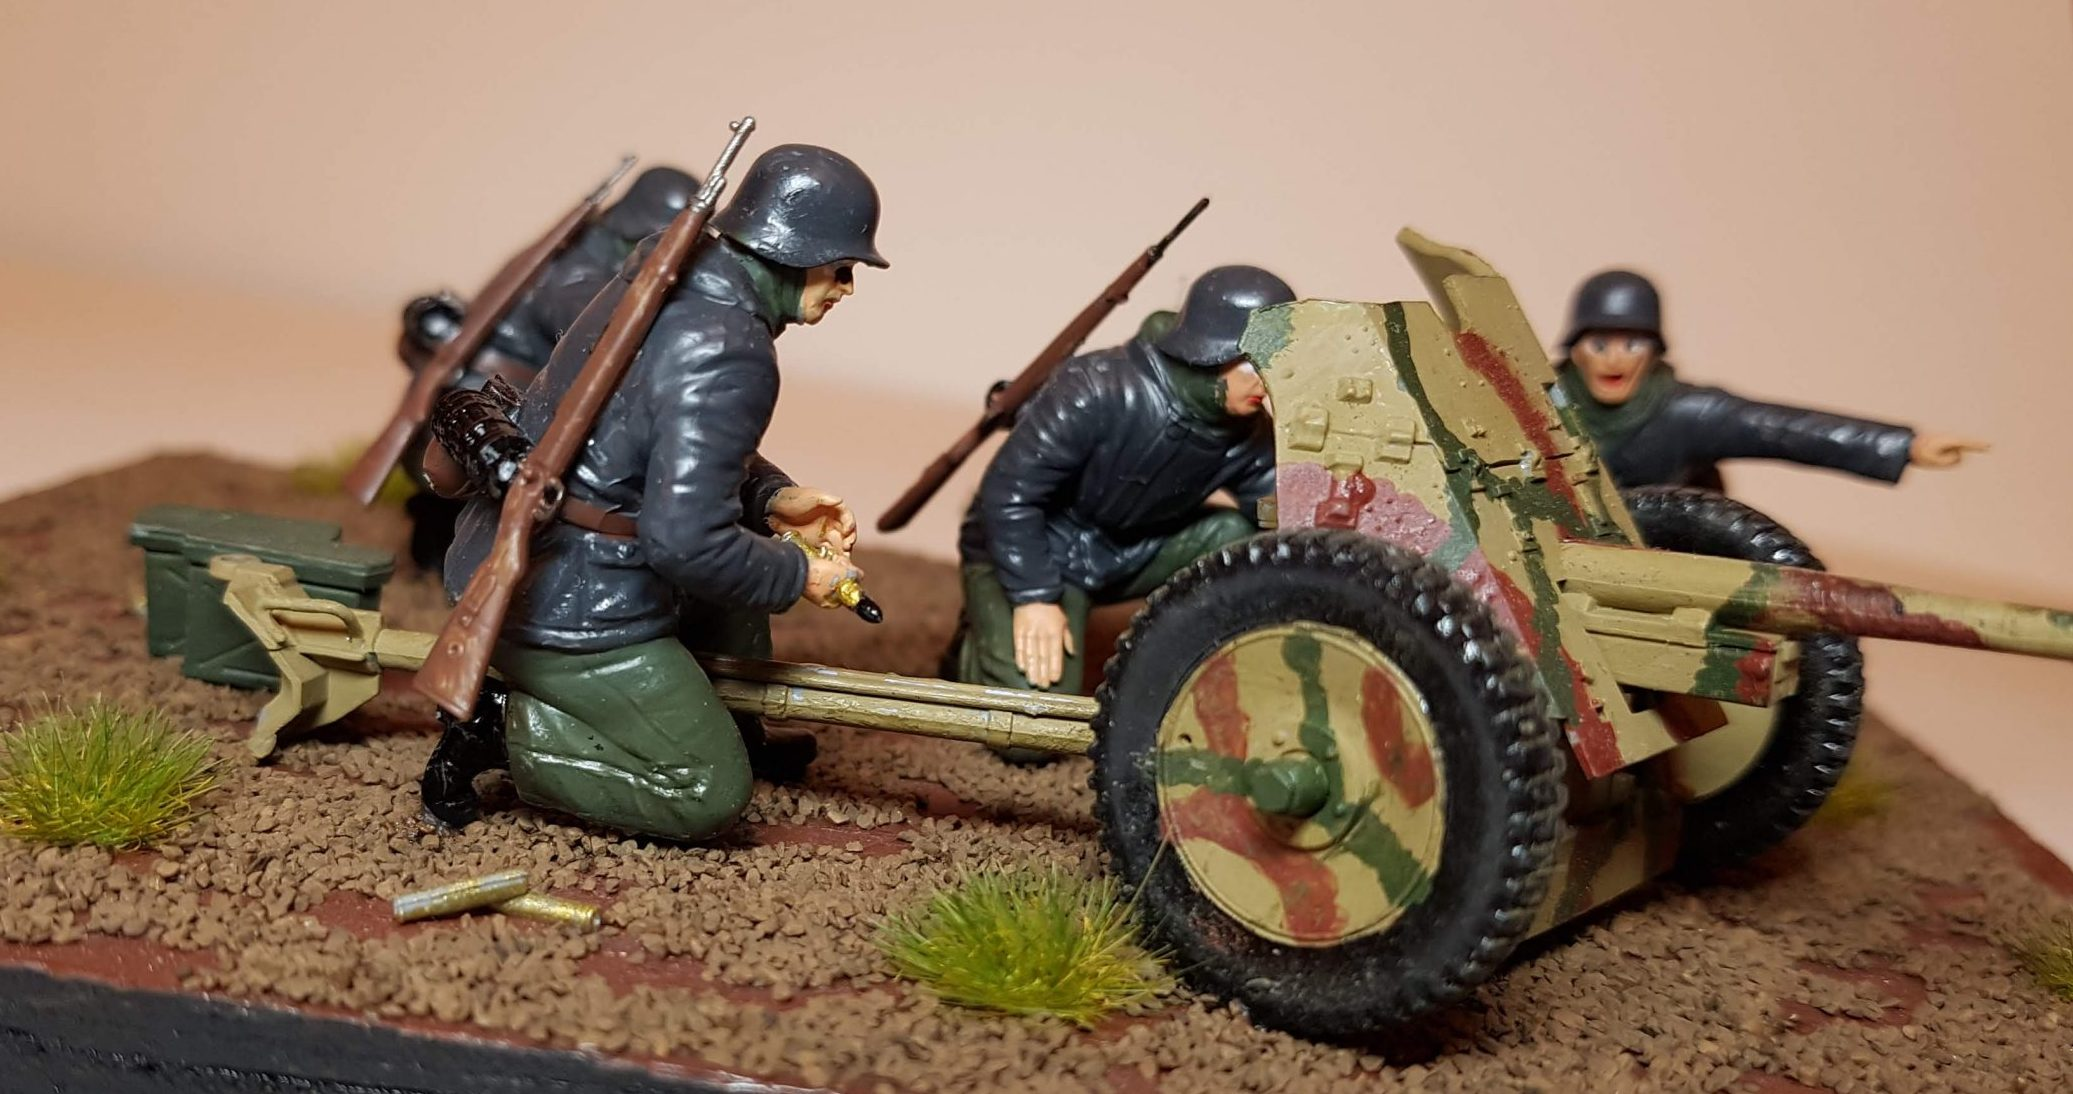 Model of Pak-36 (WW2) - View 3 - 1/35 Scale - Built By Wright Built - ZVEZDA Models